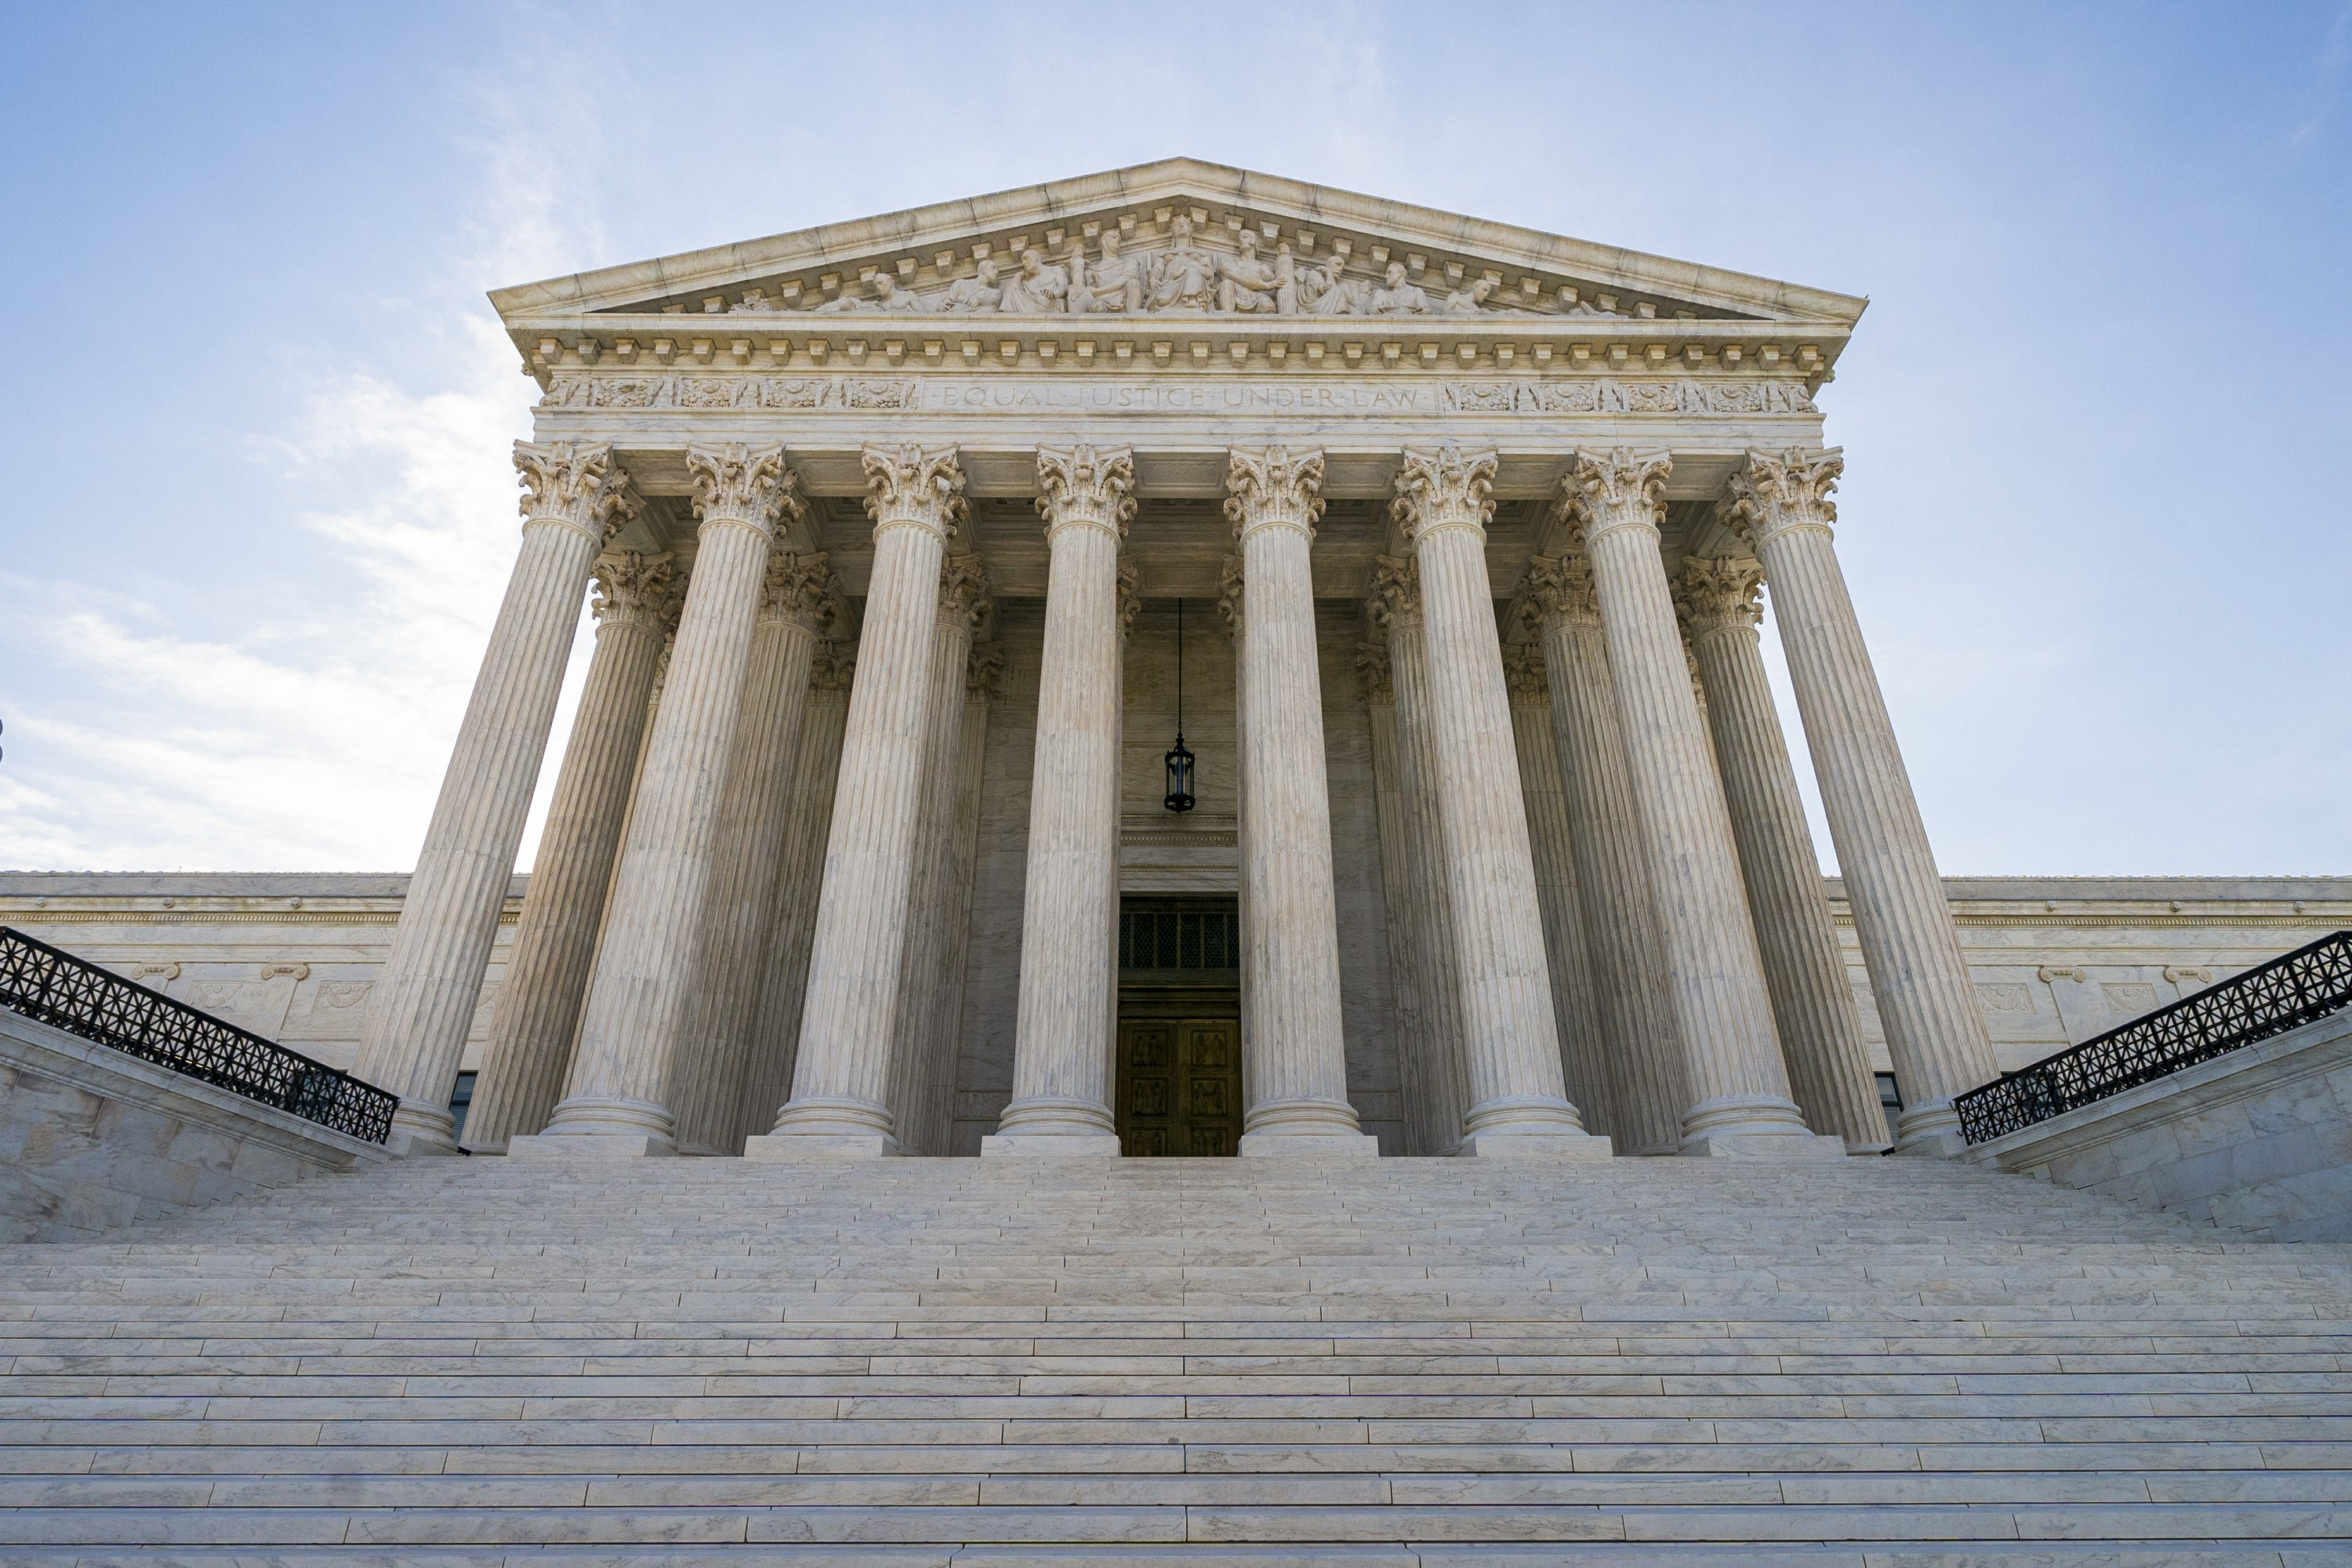 Justices won't revive Alabama ban on abortion procedure